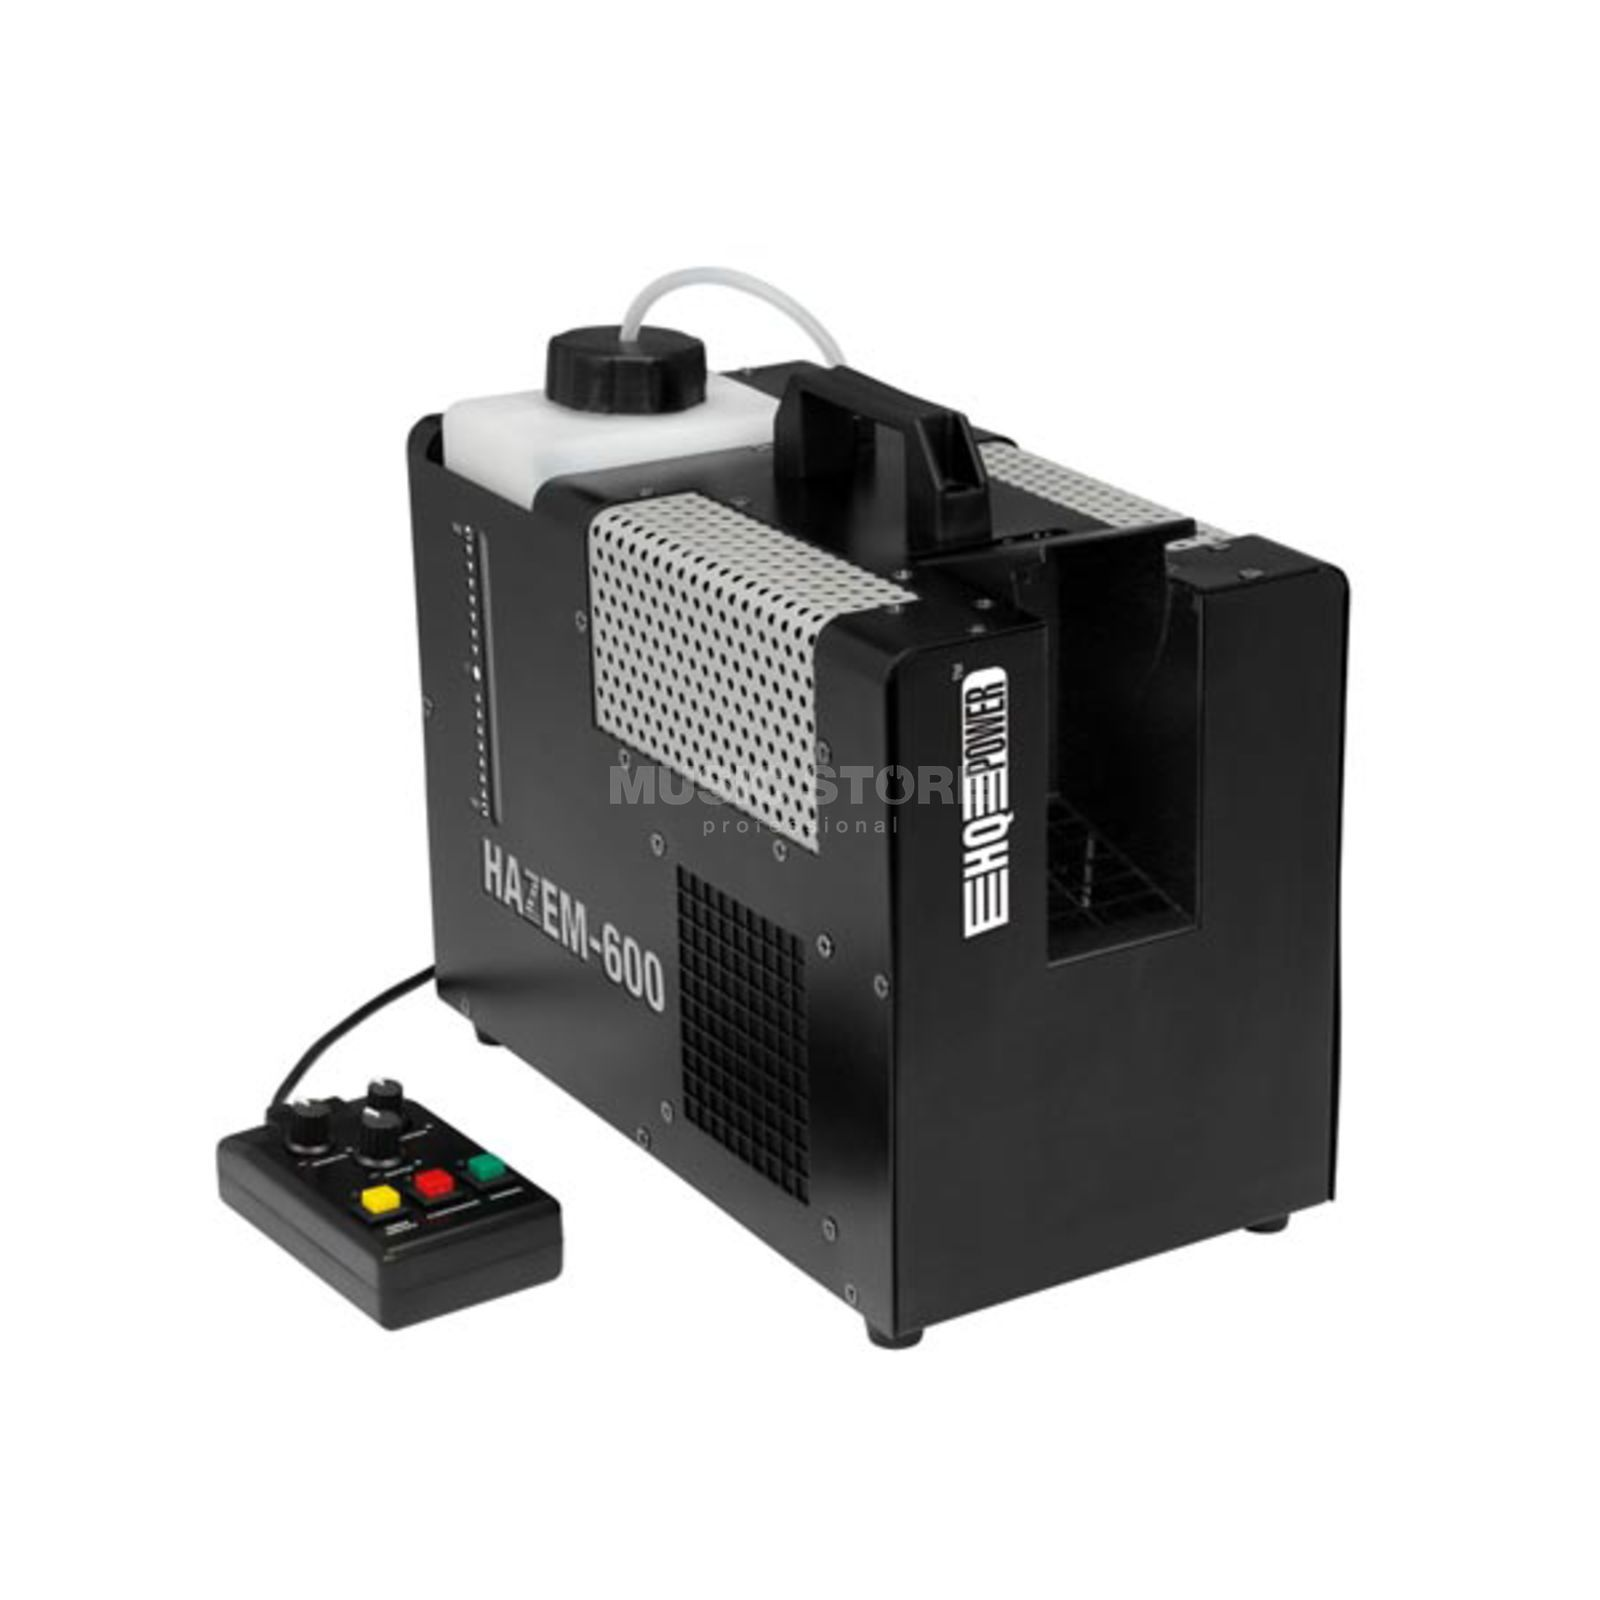 HQ Power HQ HZ10001 600W Hazer ohne DMX Product Image